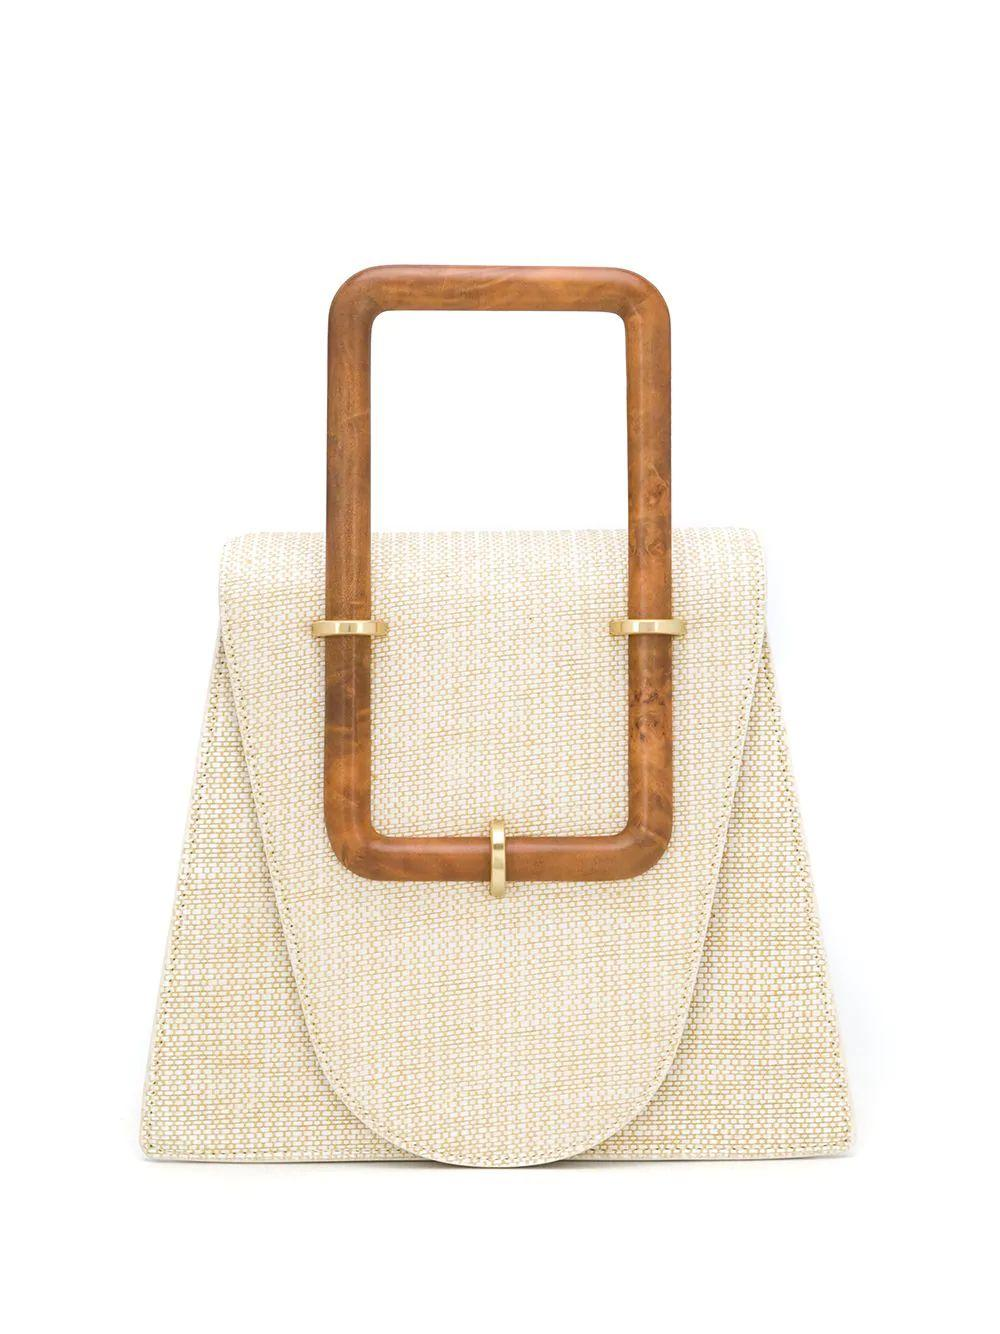 Bibi Top Handle Bag